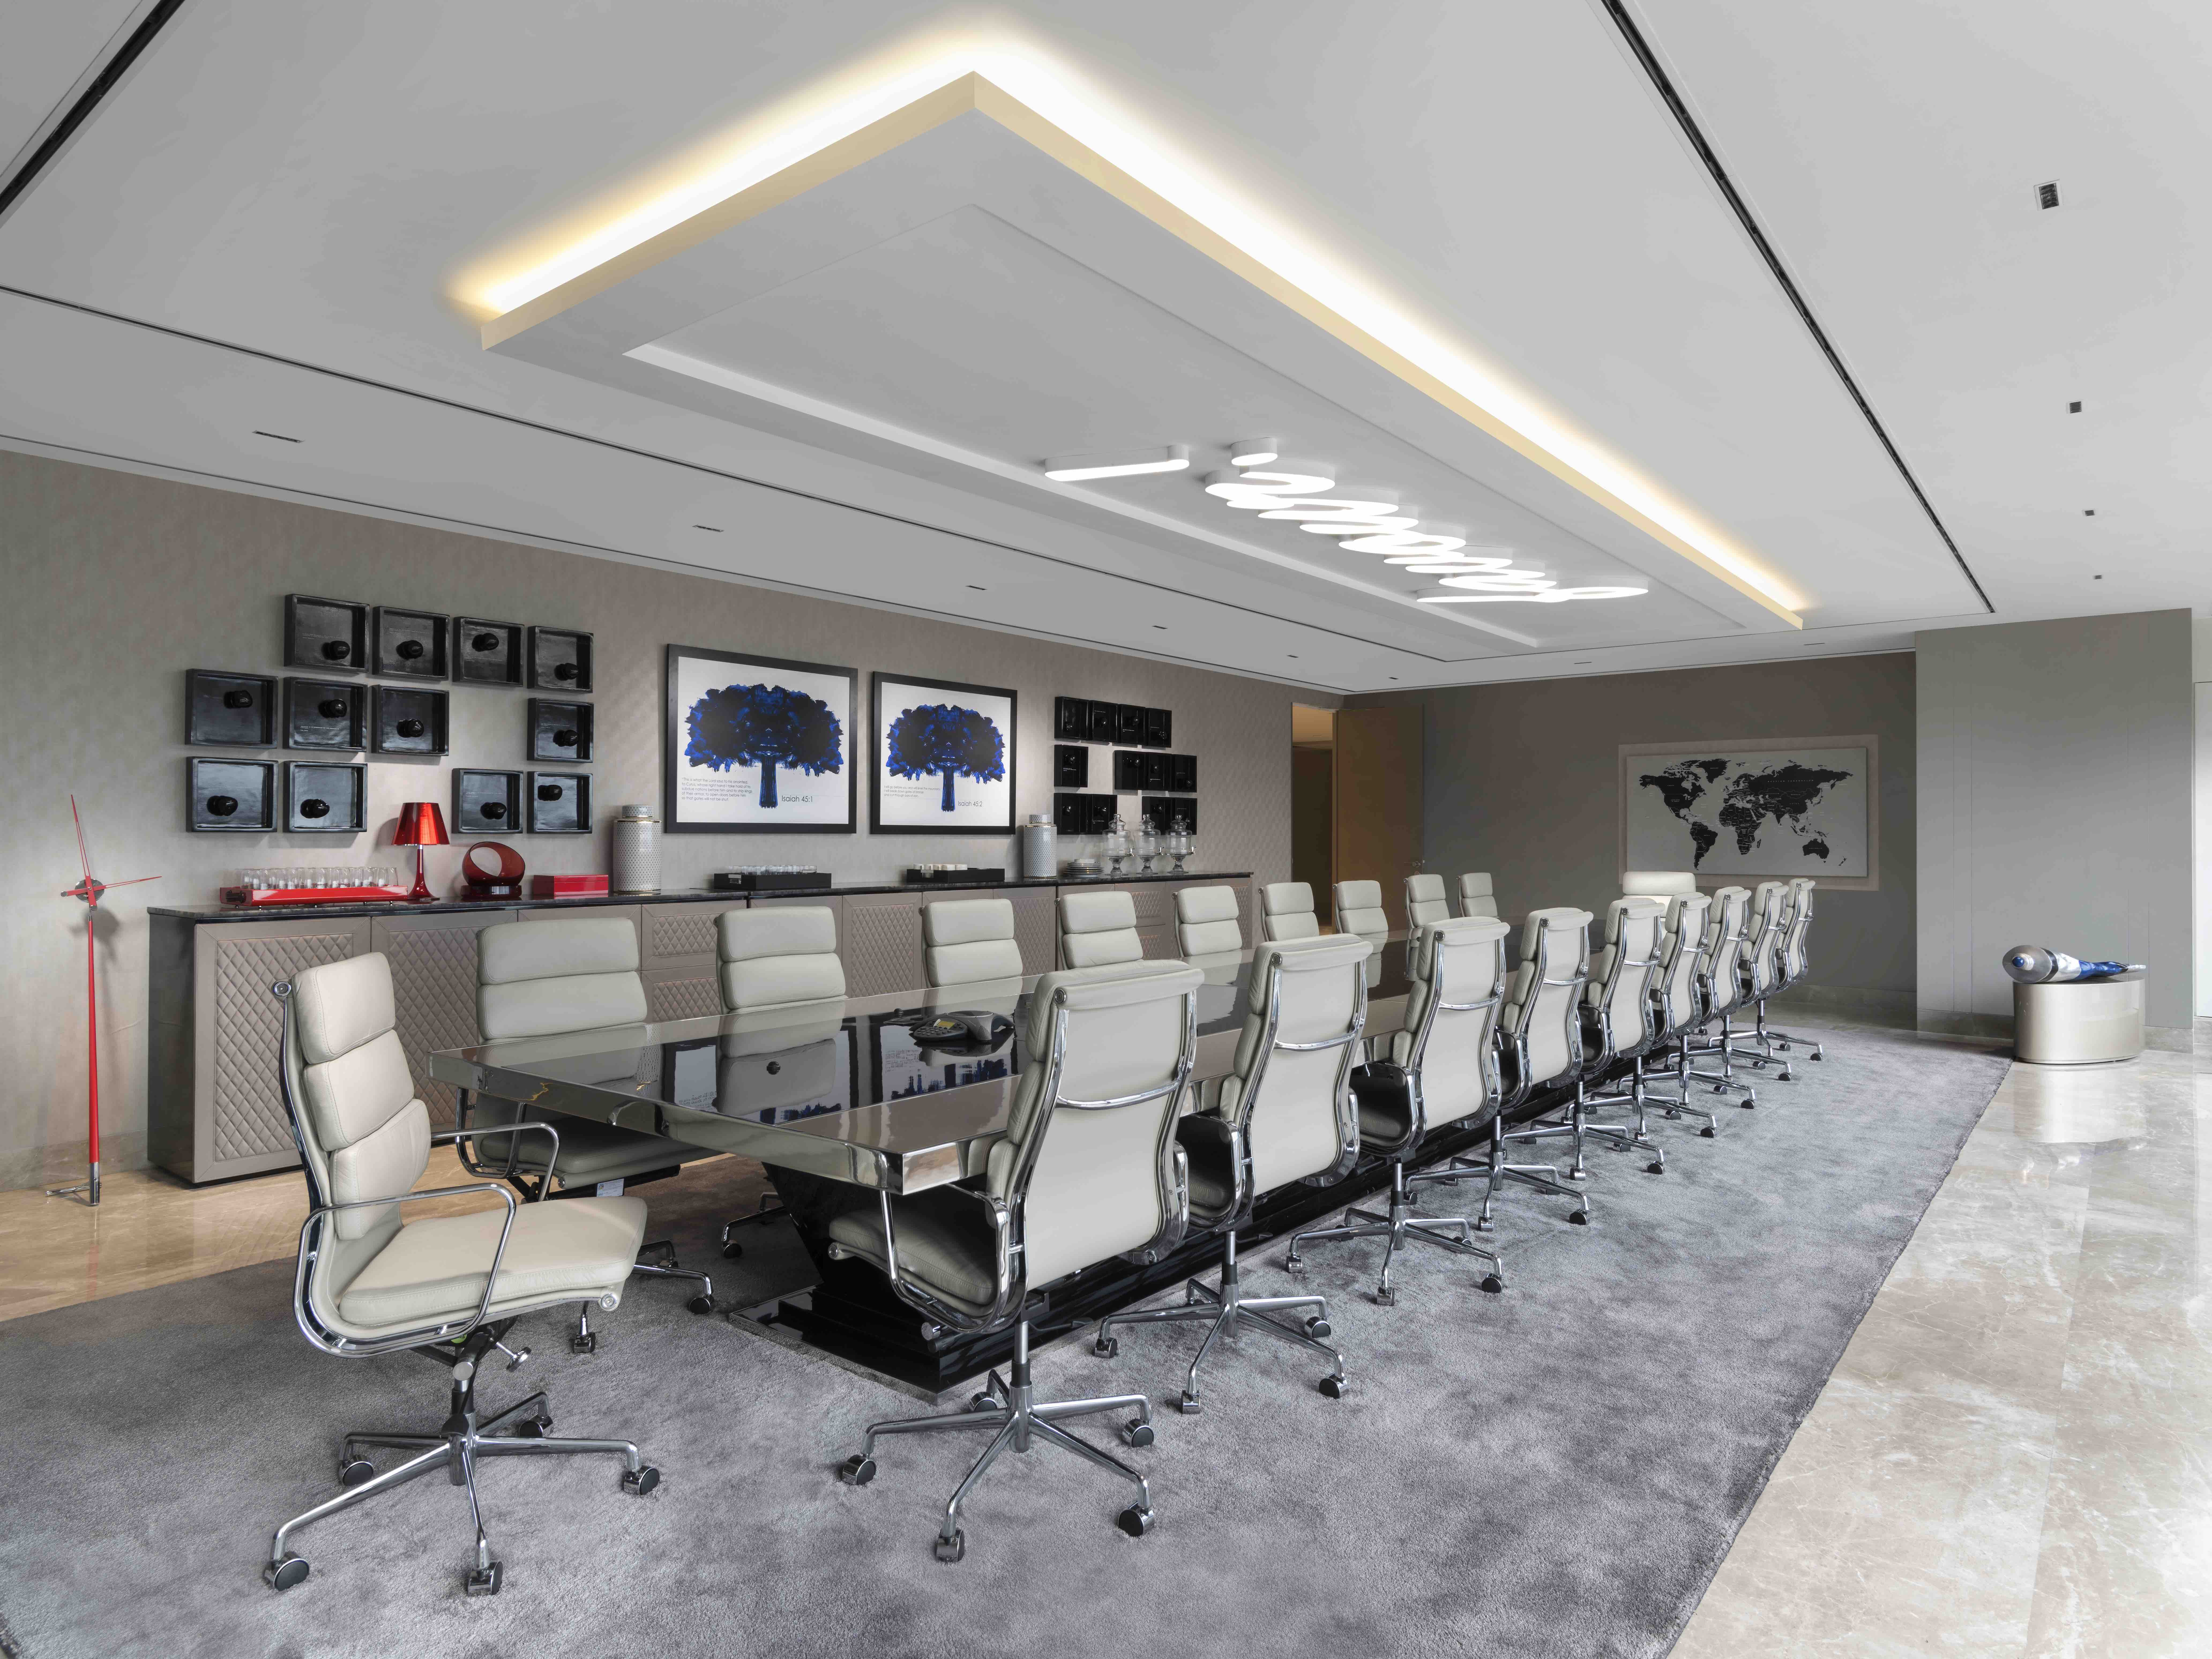 One BKC Workspace by Sanjyt Syngh